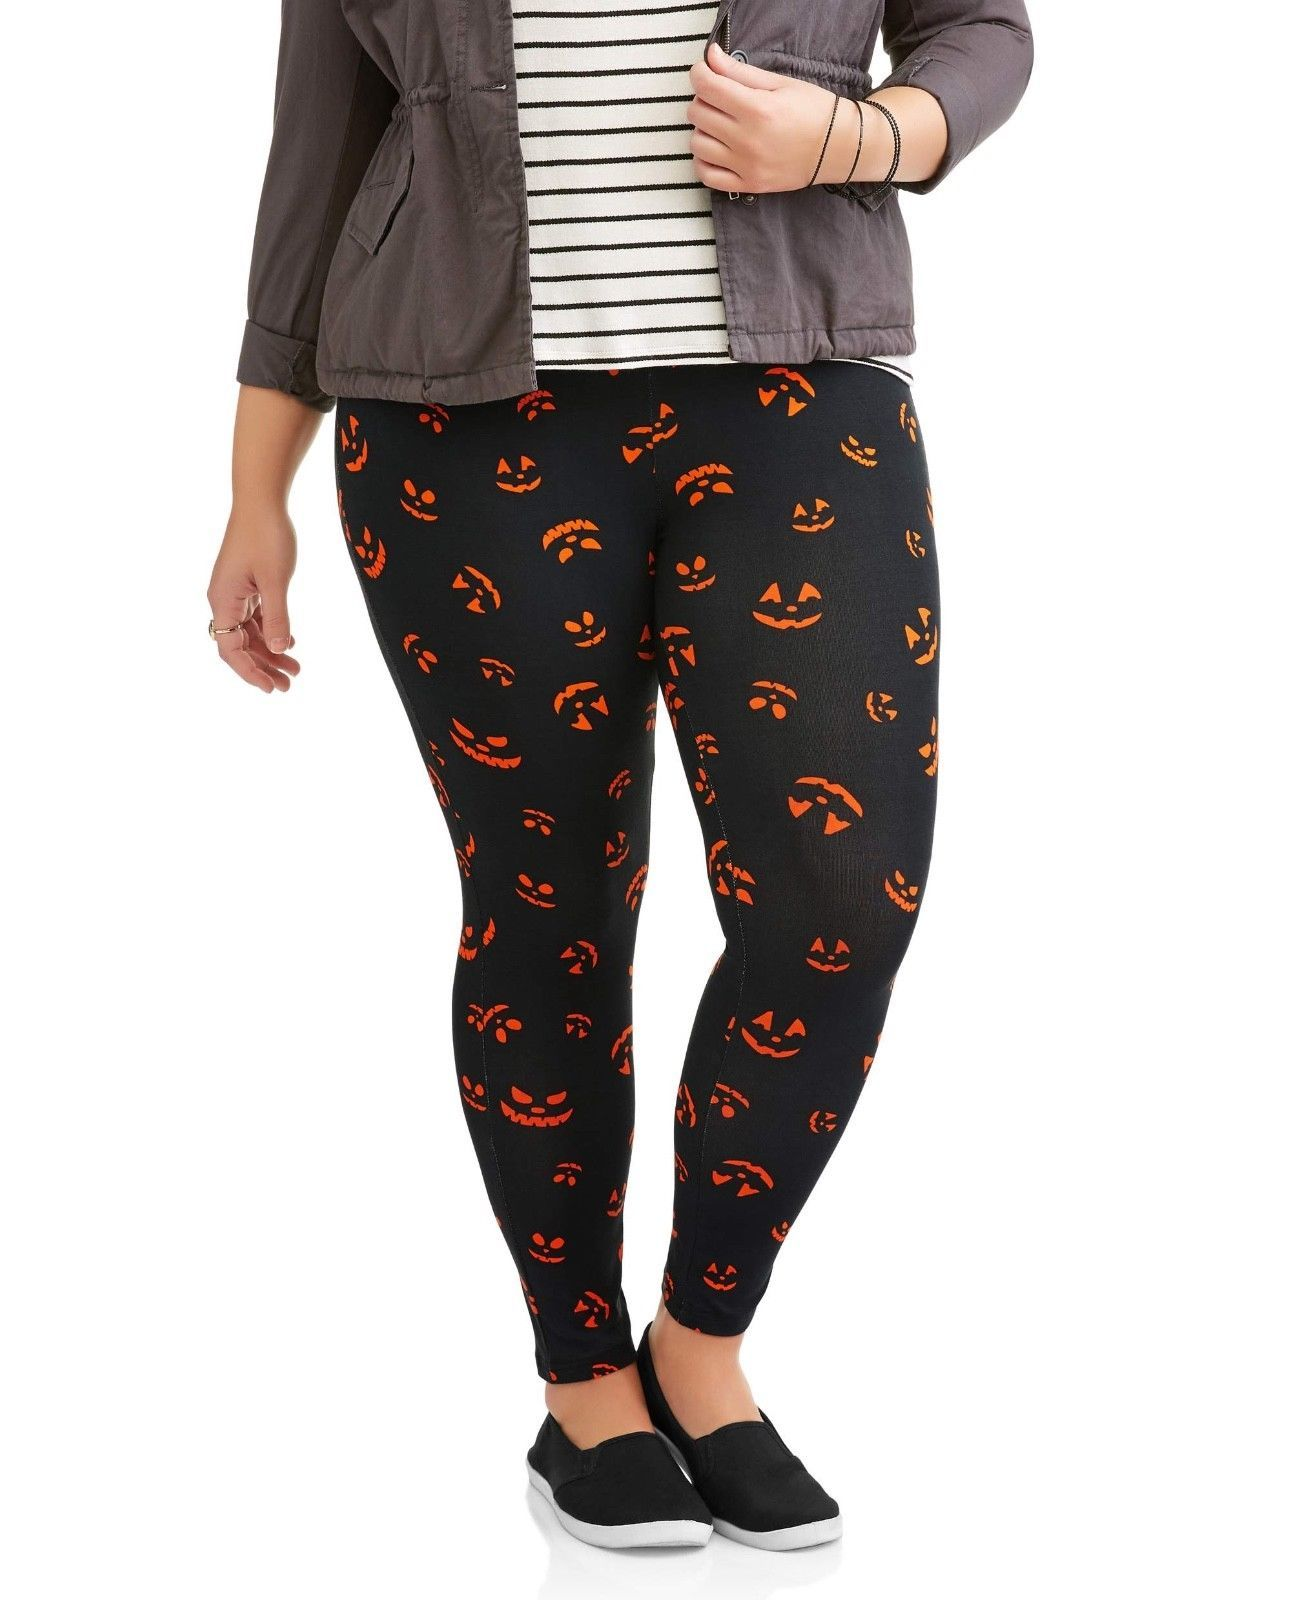 53e11abe9f81af Womens Plus Size 3X Leggings Halloween Pants Orange Pumpkin Faces Faded  Glory